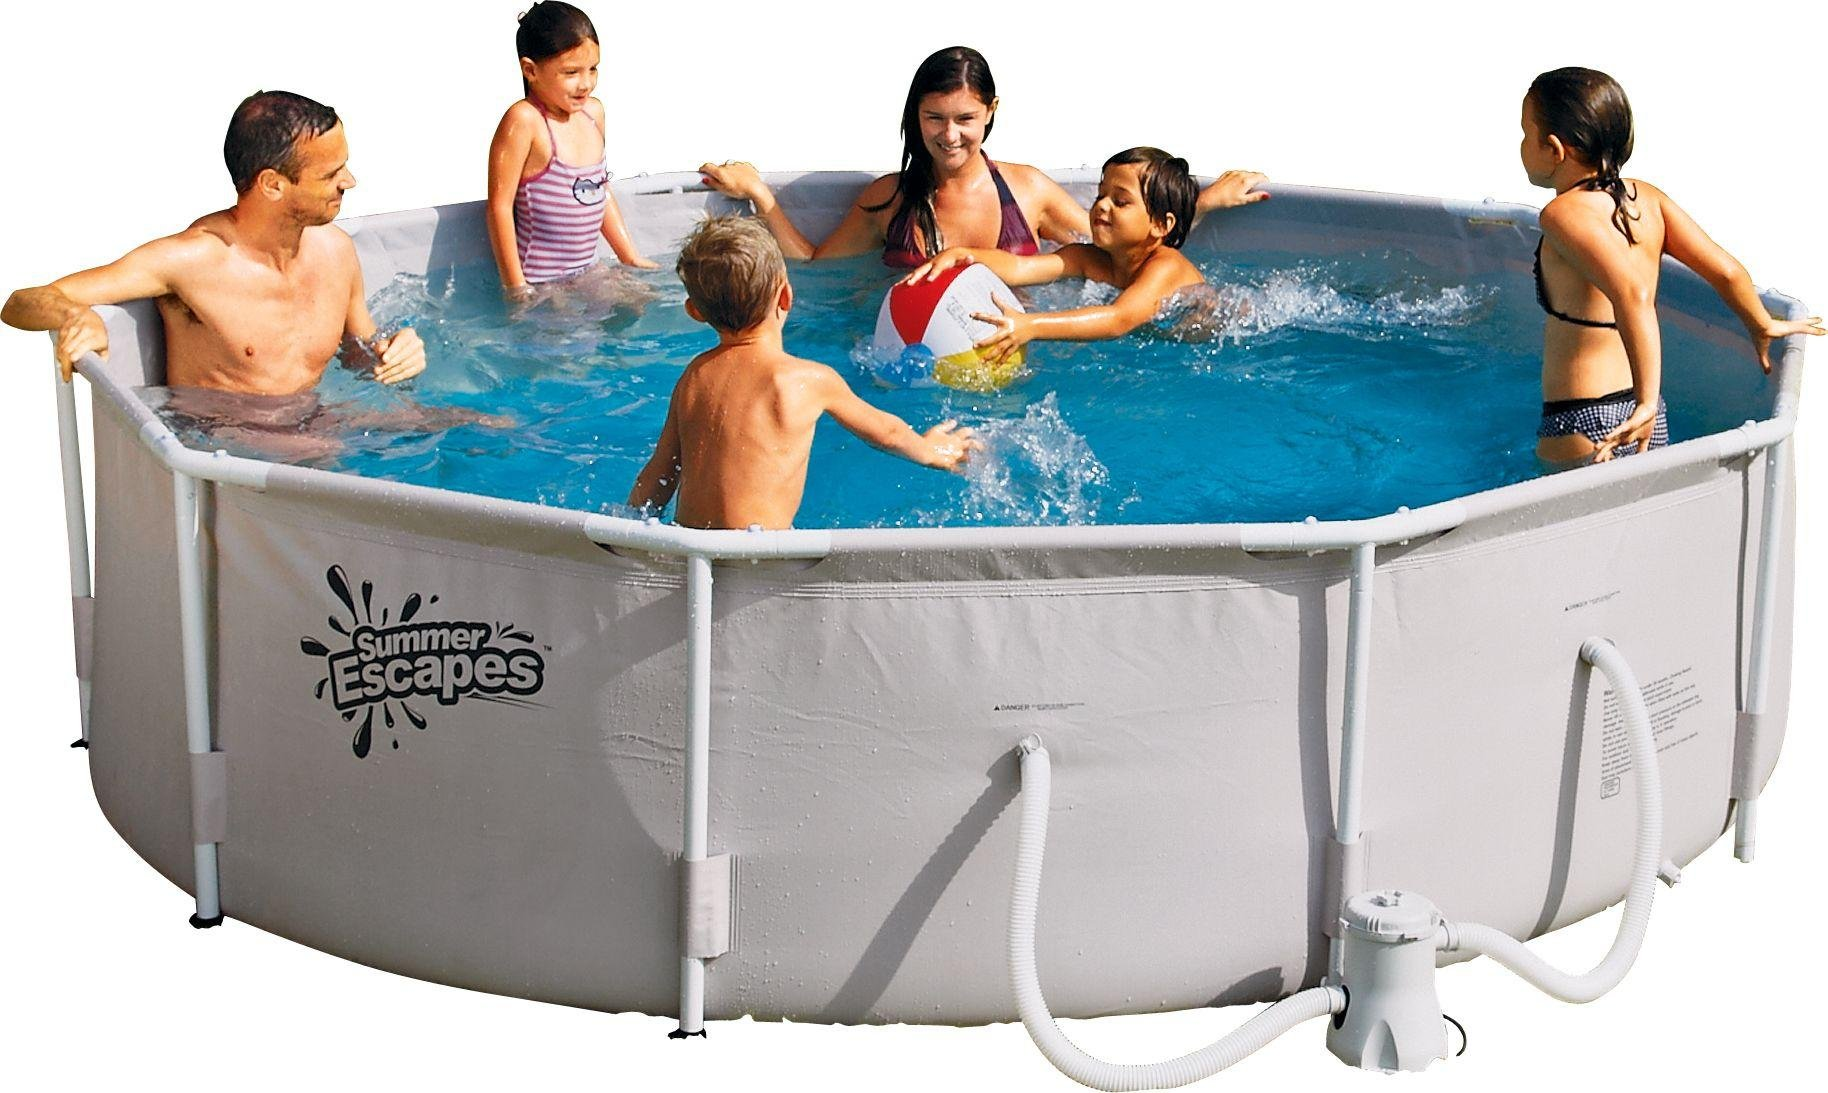 Jacuzzi Pool Argos Buy Summer Waves White Pool 10ft 4 792 Litres Pools And